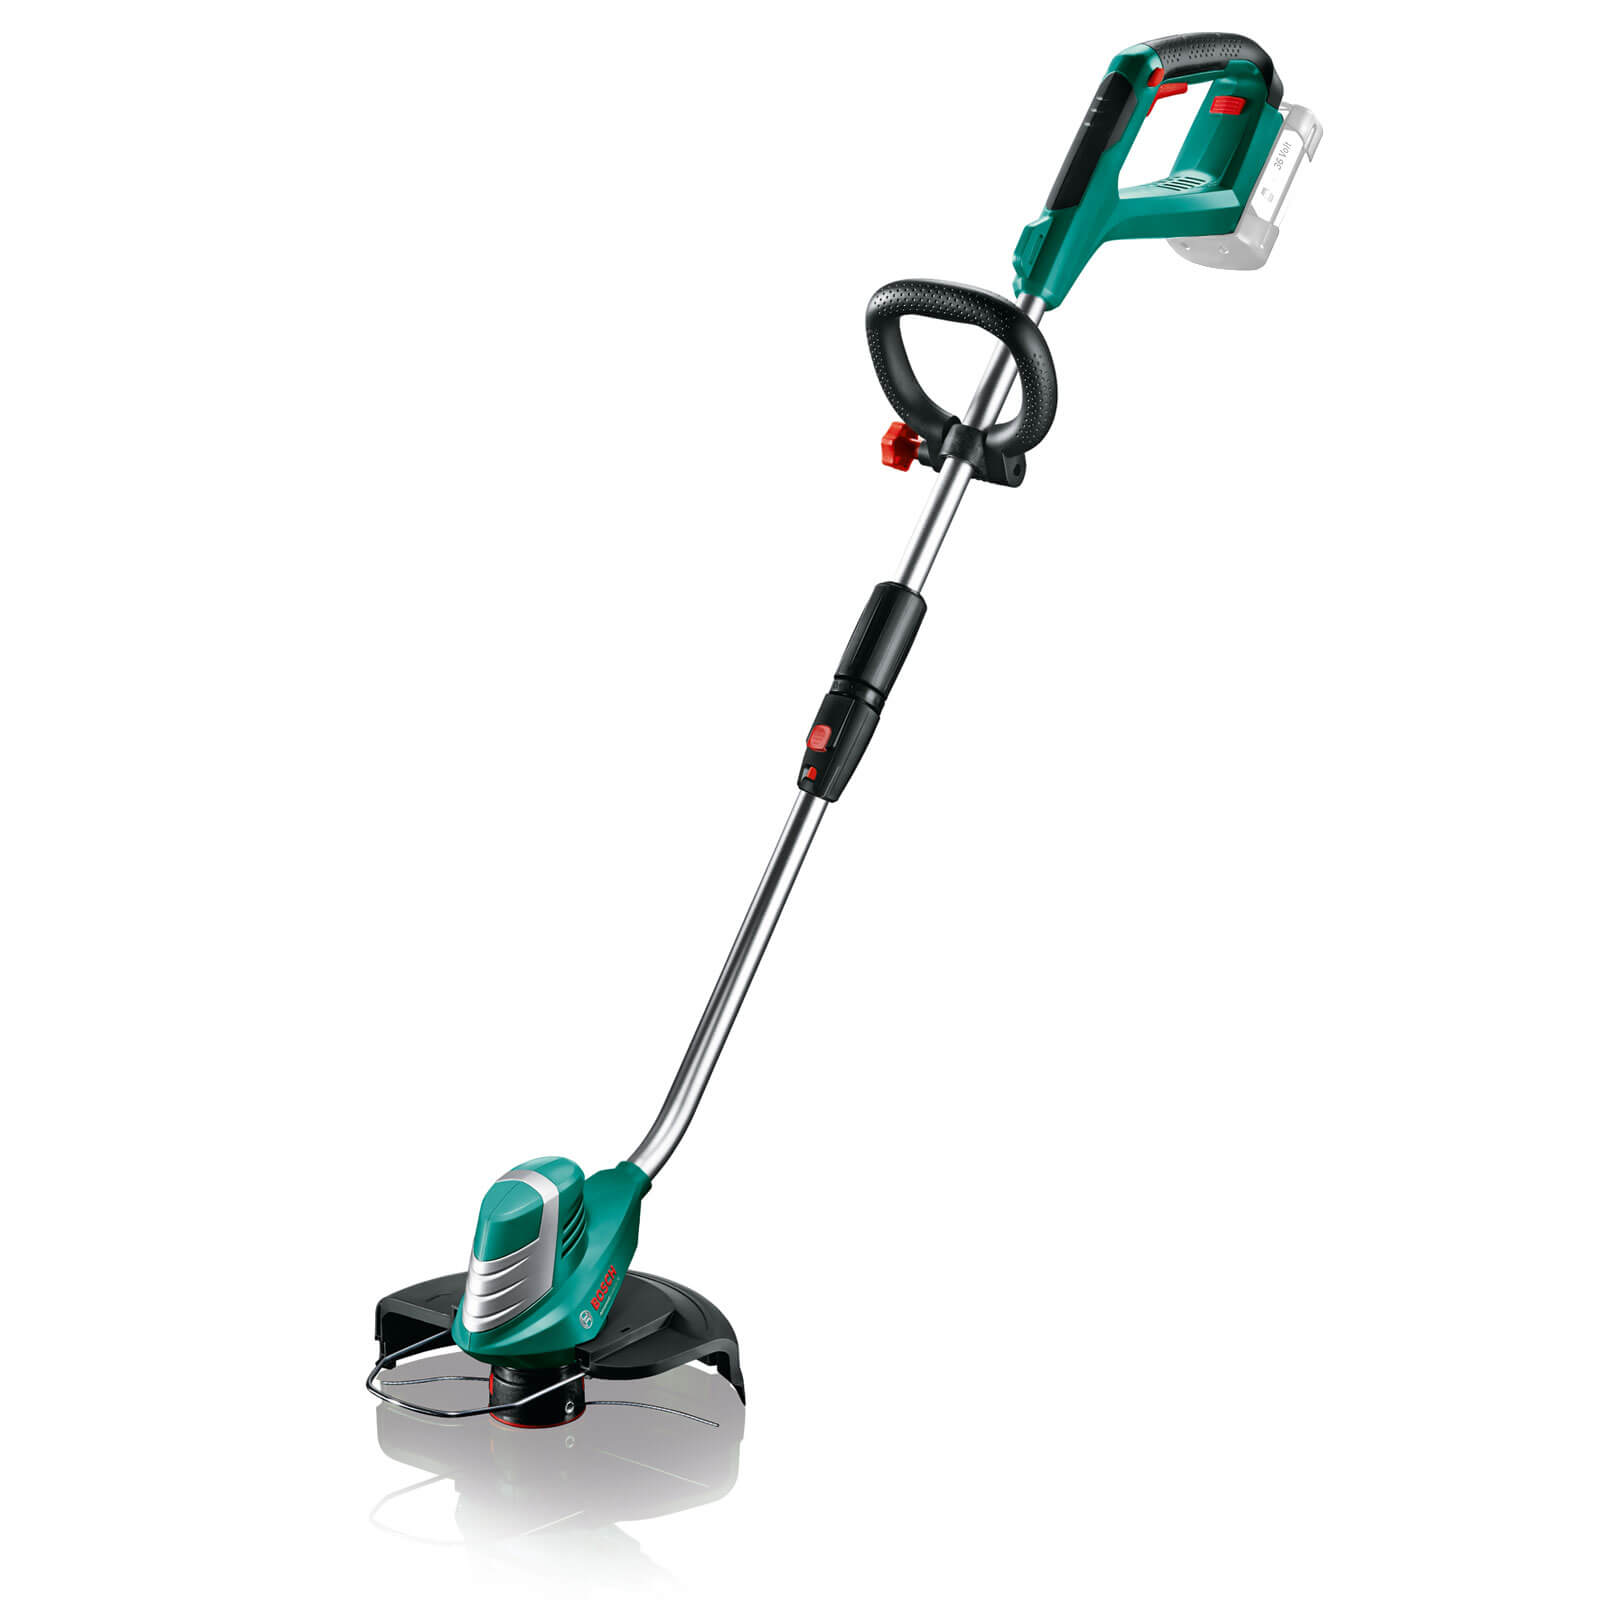 Image of Bosch ADVANCEDGRASSCUT 36v Cordless Grass Trimmer 300mm No Batteries No Charger